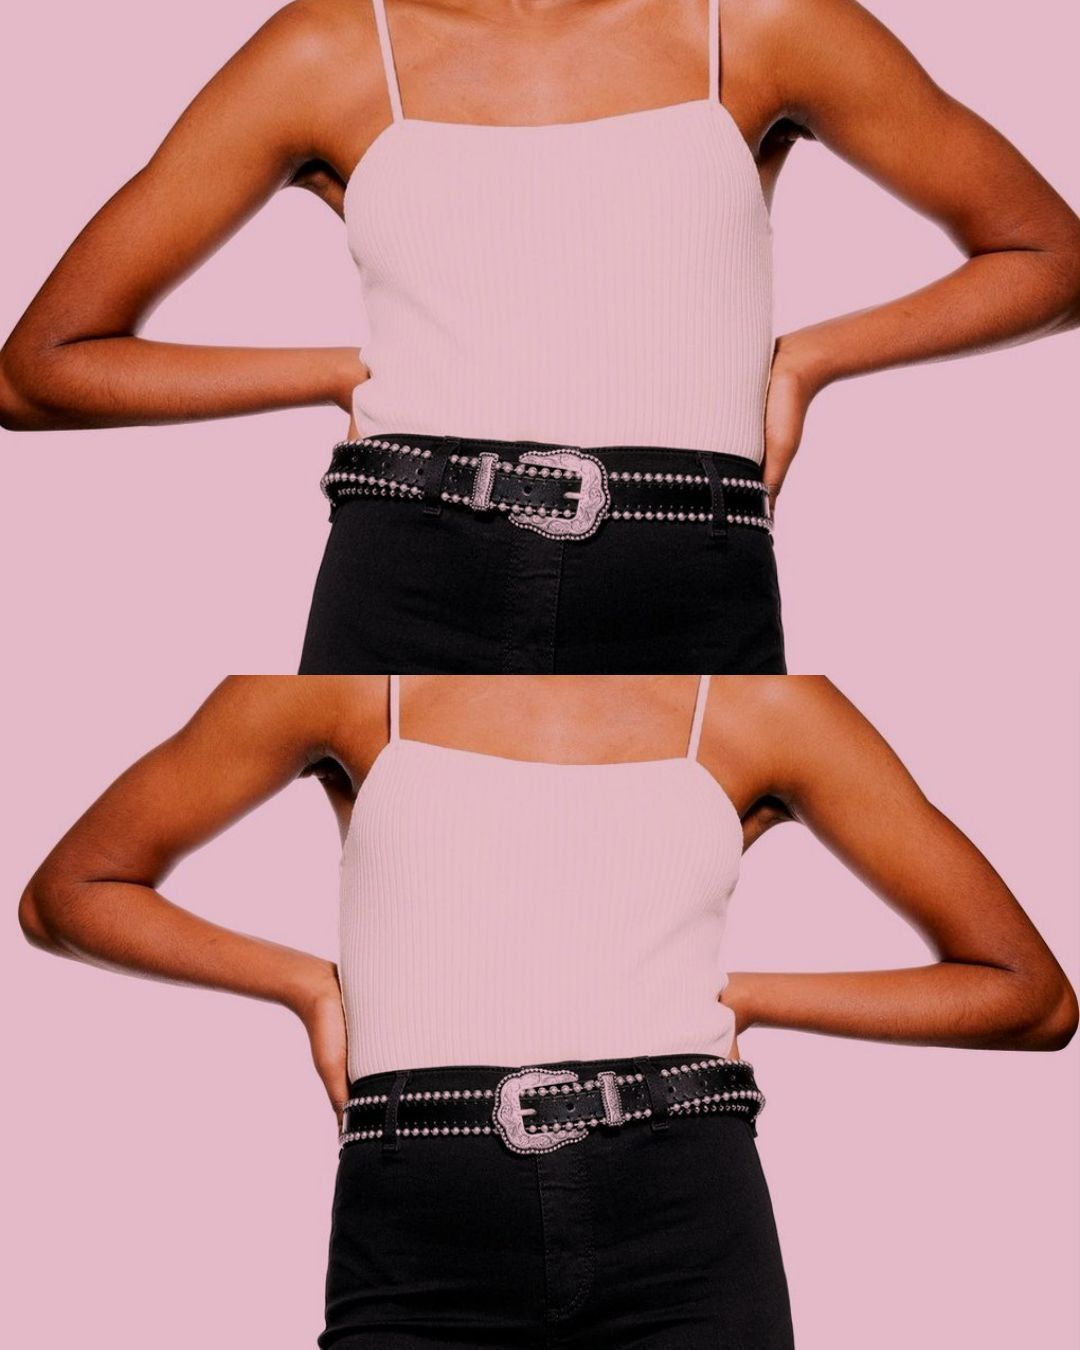 Topshop Launched Its Popular Joni Jeans With Belt Loops